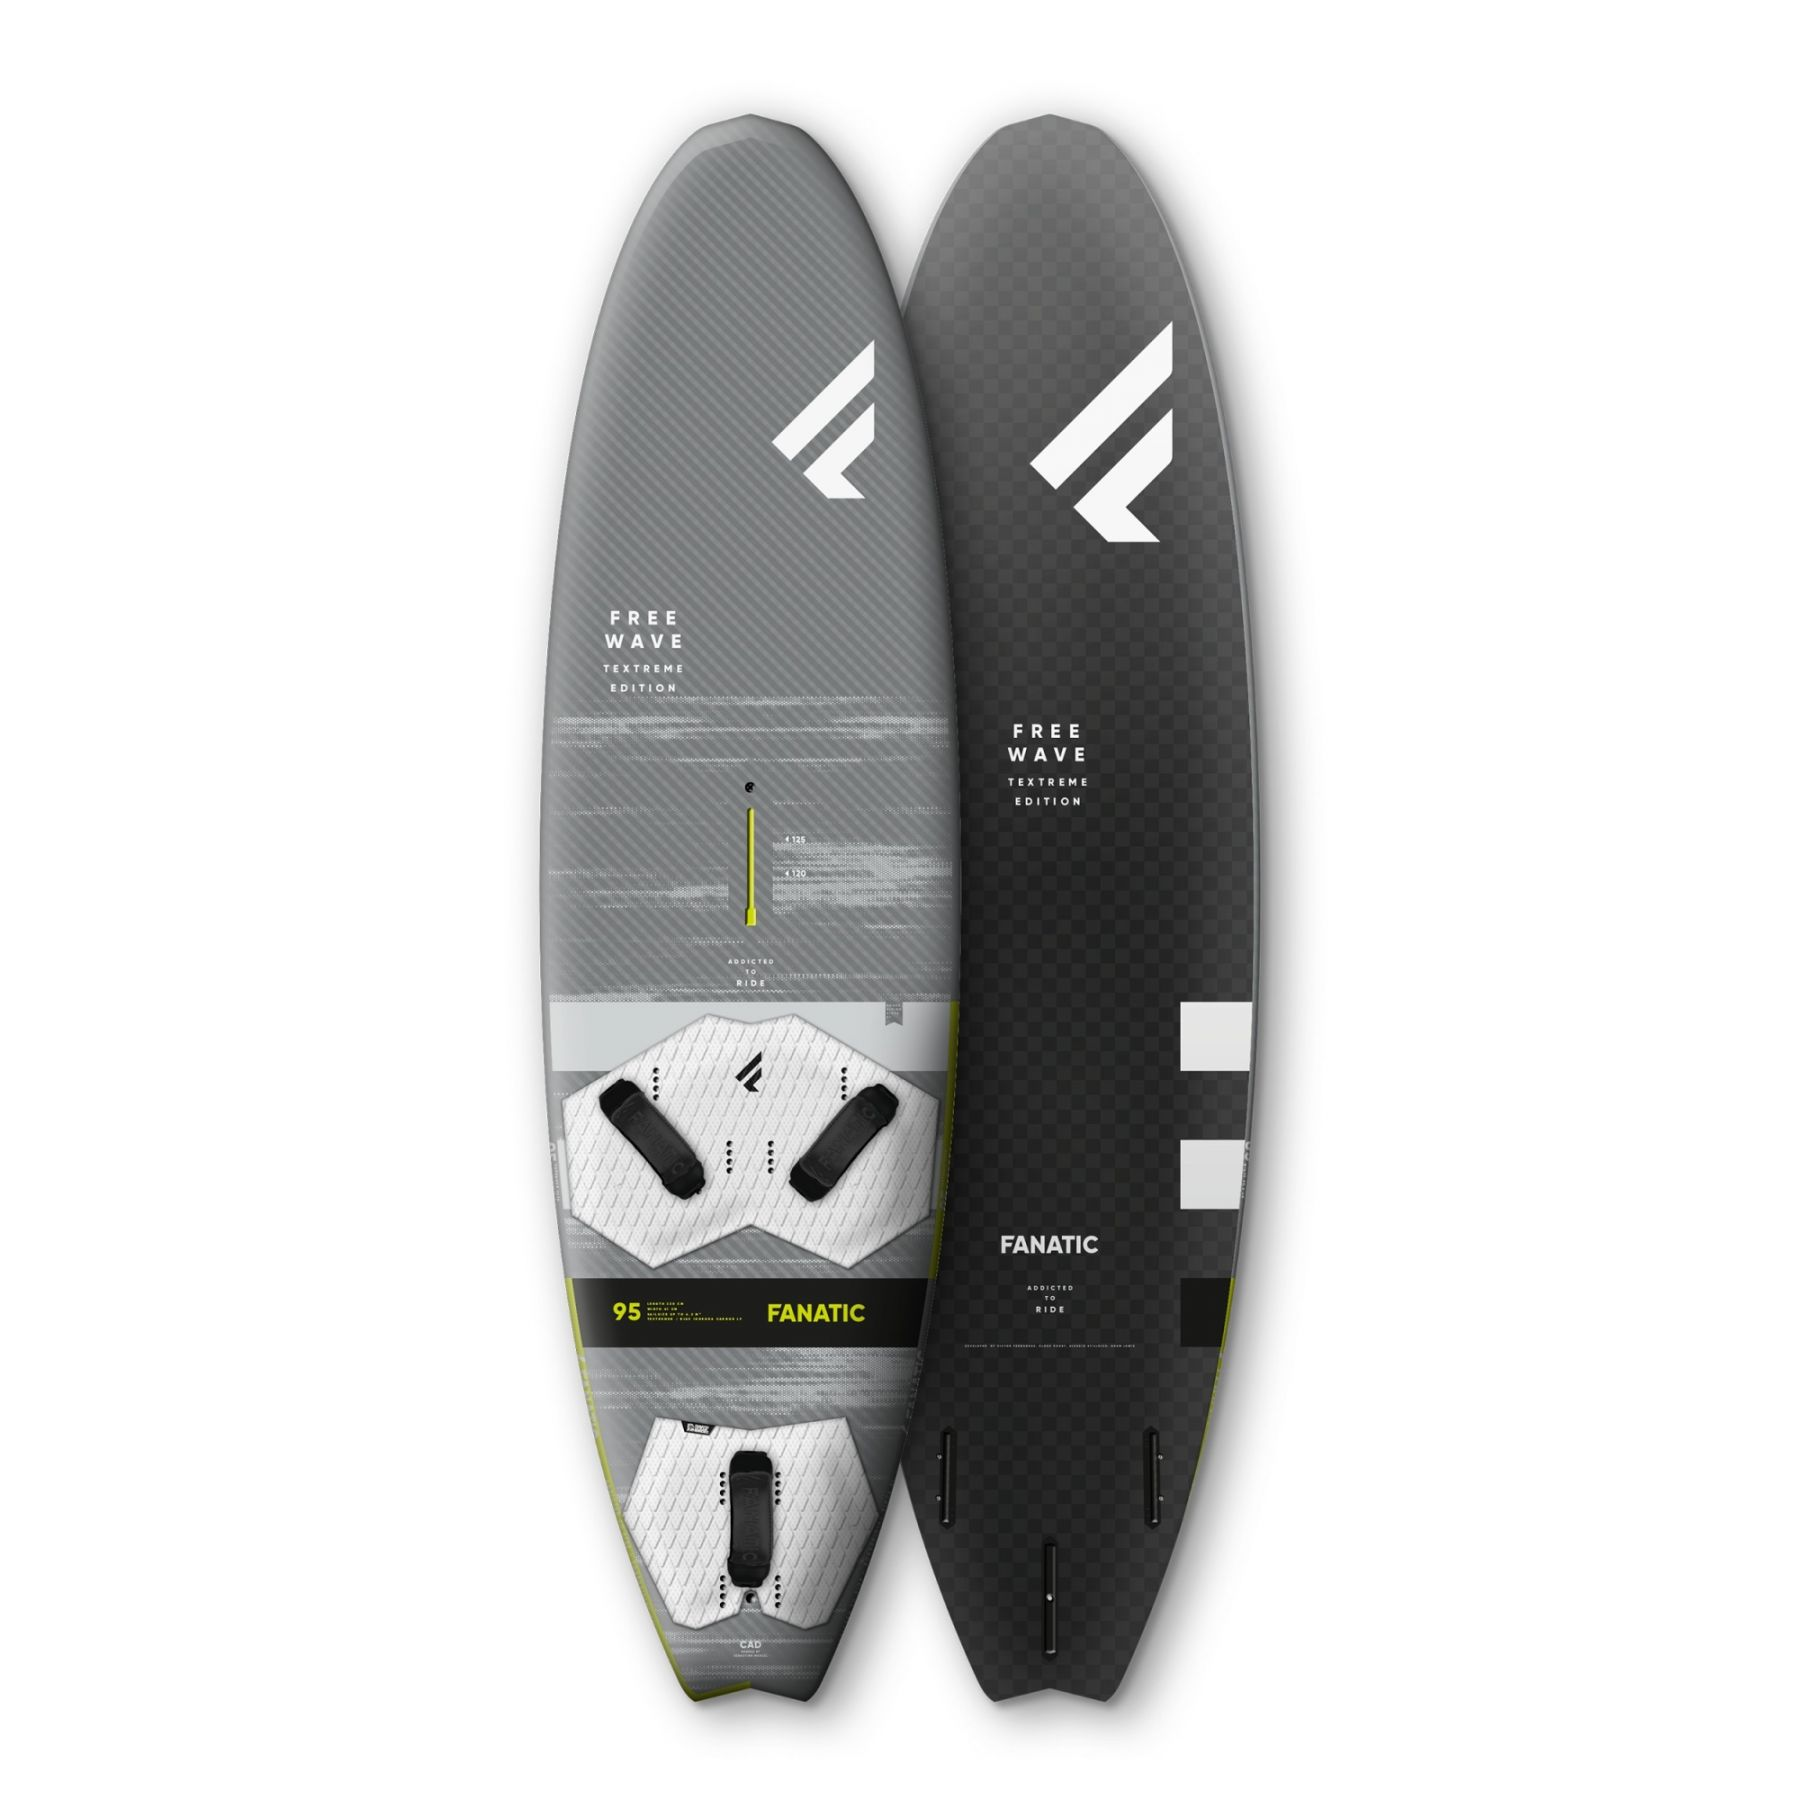 Tabla de windsurf Fanatic FreeWave TeXtreme